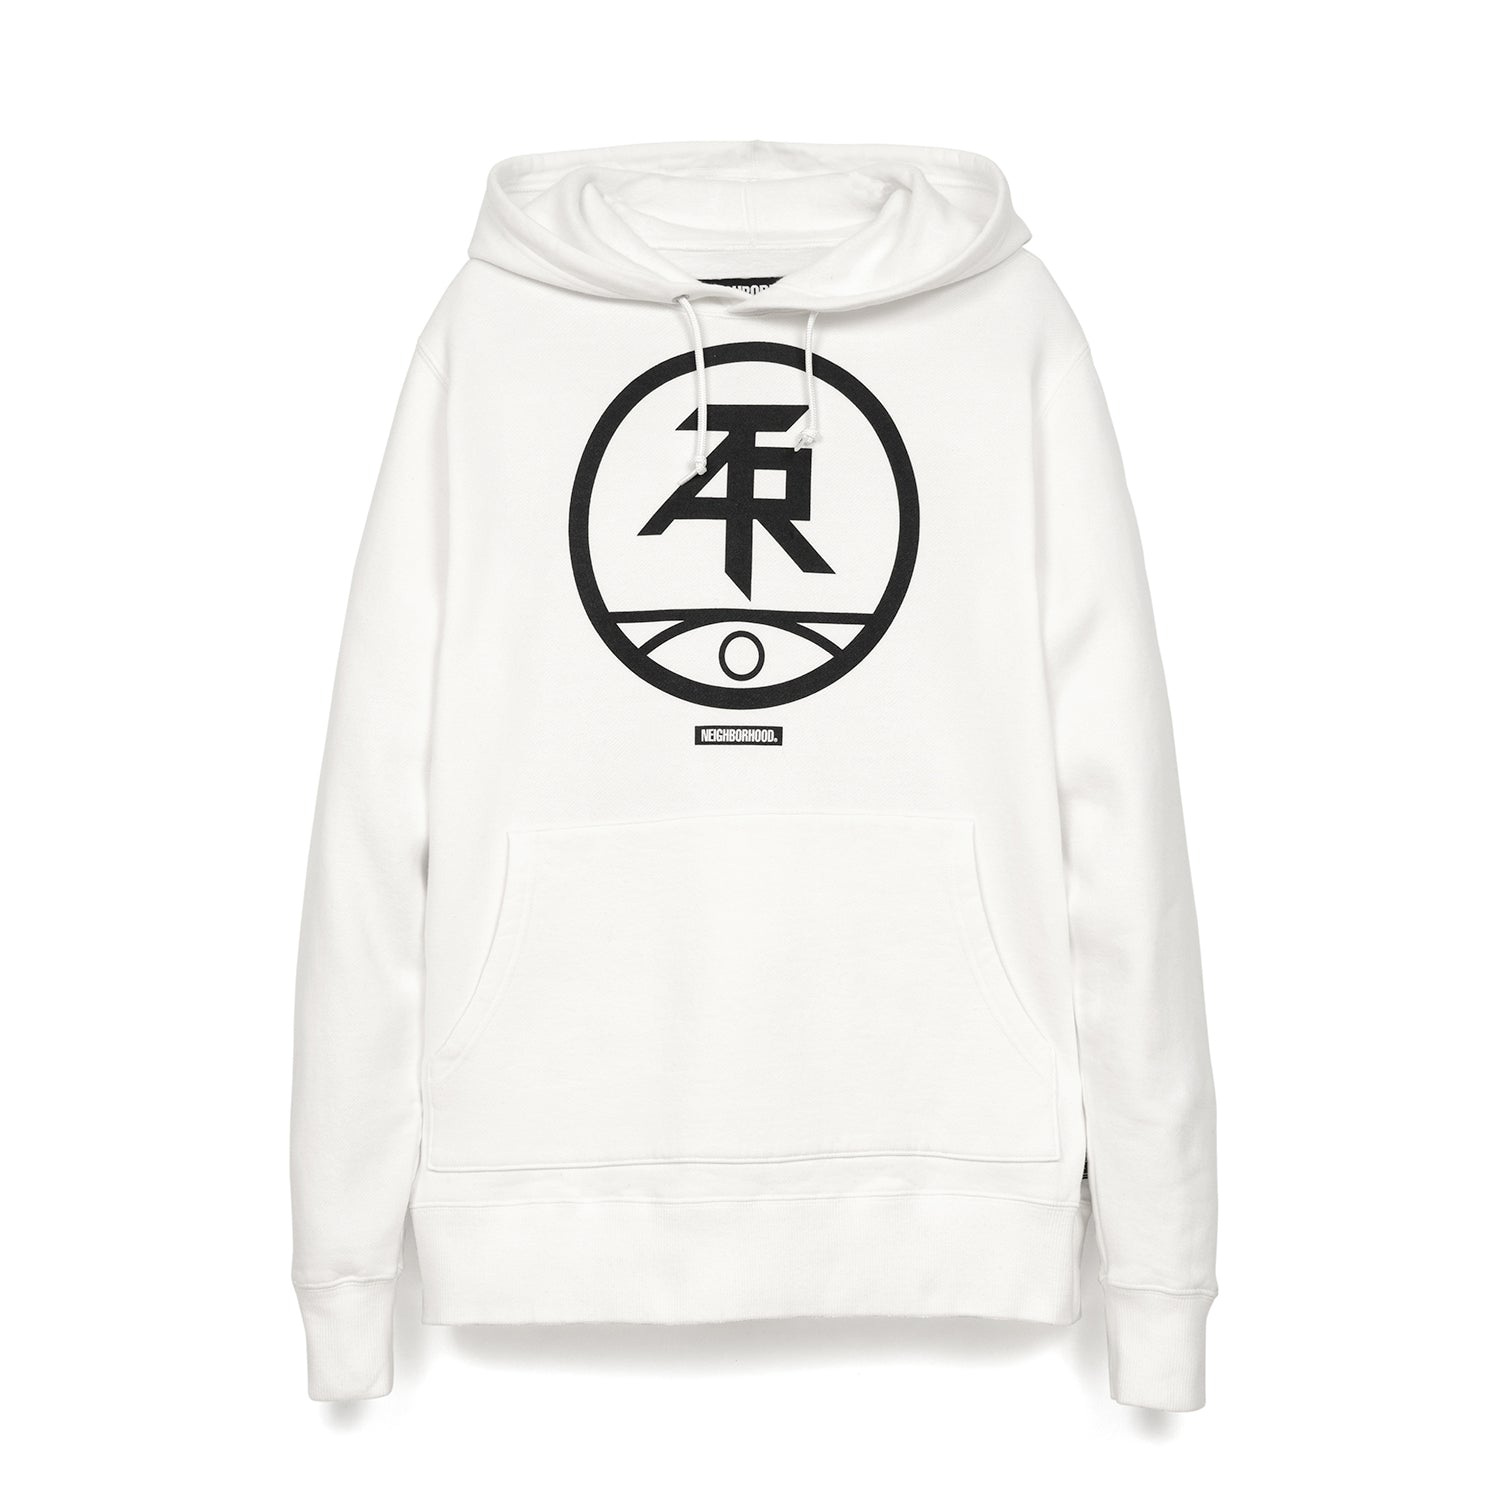 NEIGHBORHOOD 'ATR' C-Hooded L/S White